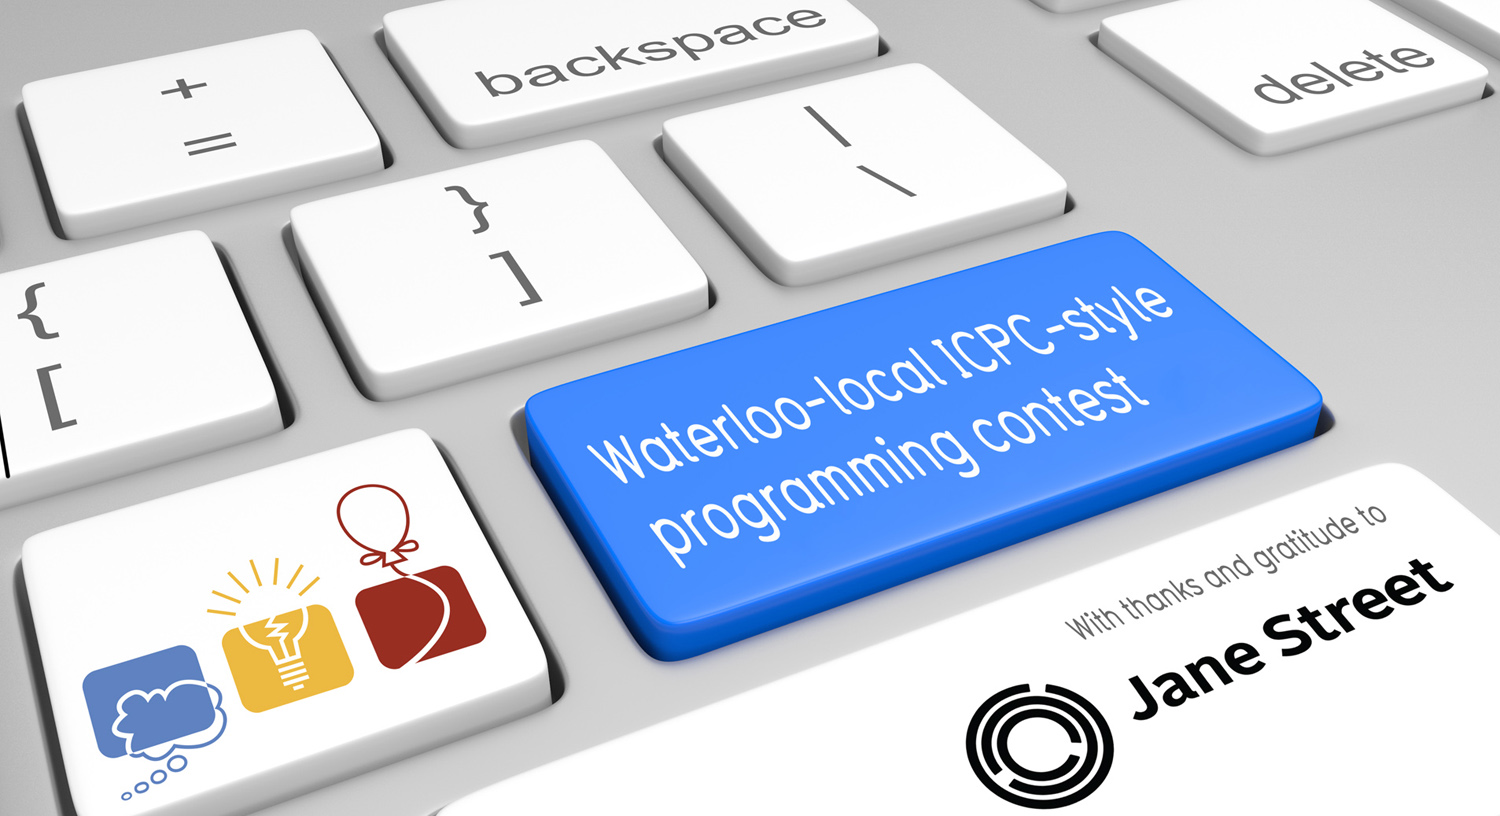 Waterloo-local ICPC-style programming contest